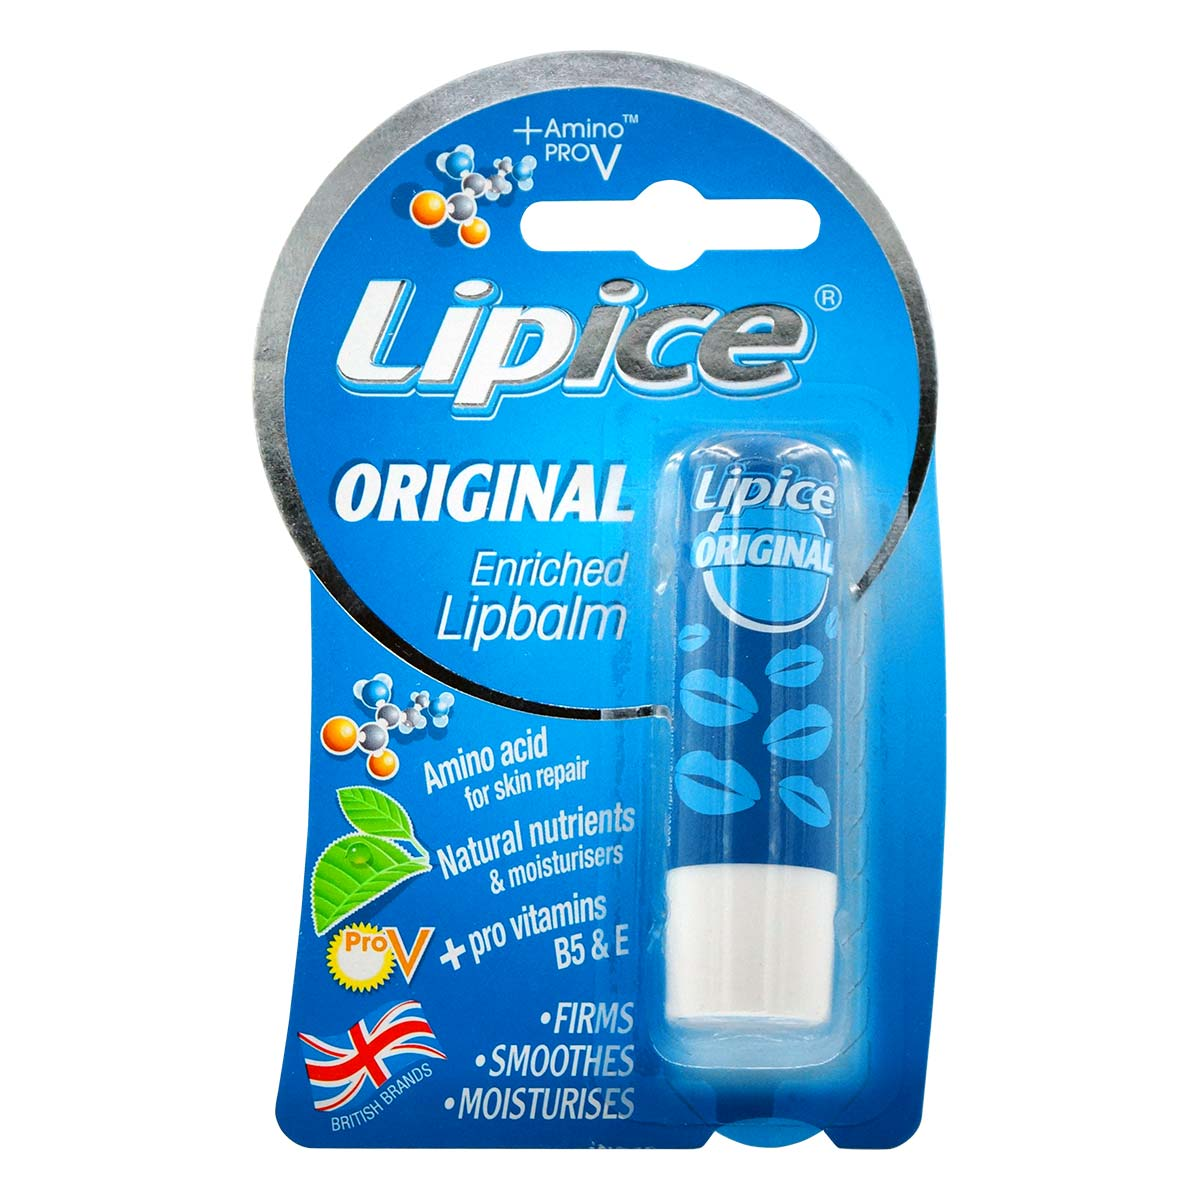 Lipice for Original enriched Lipbalm 10ml